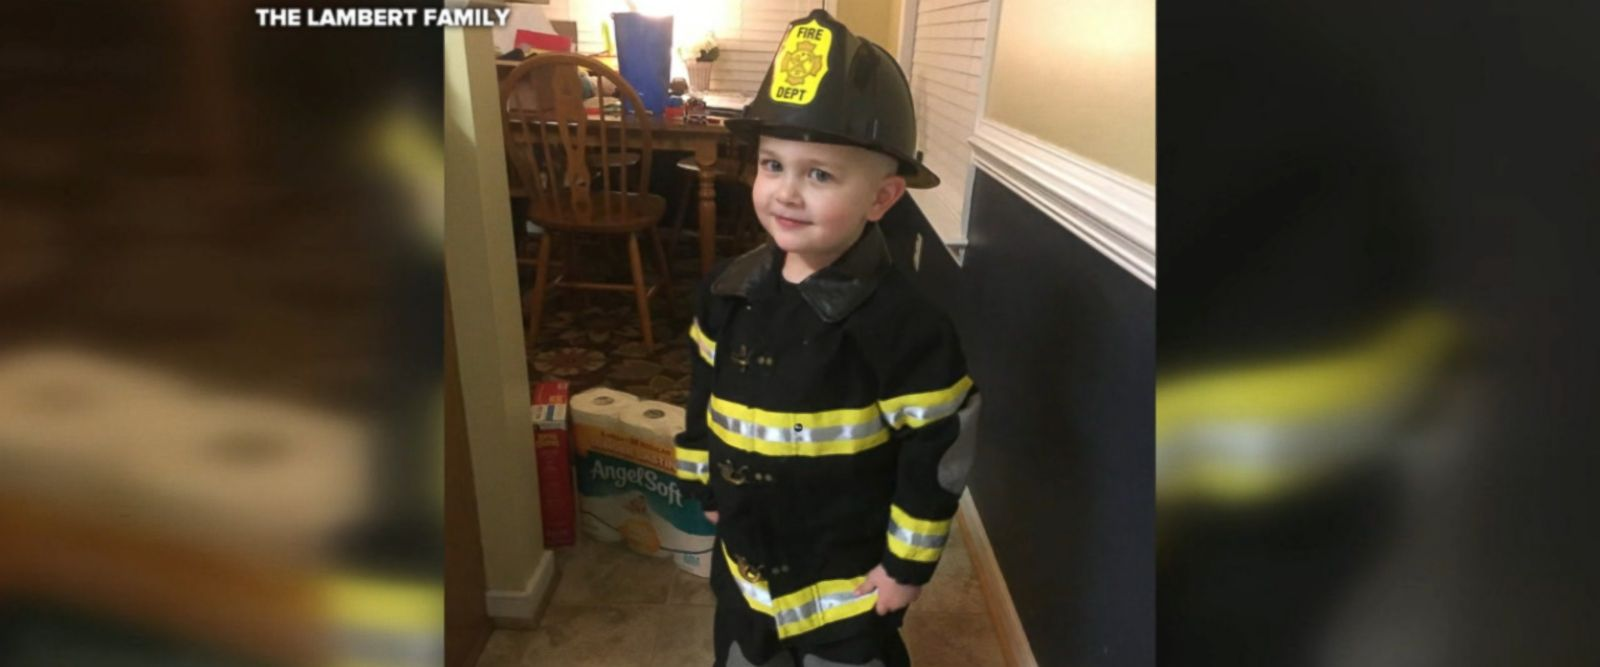 Caleb Lambert, 3, was diagnosed with stage 3 neuroblastoma on Feb. 11.